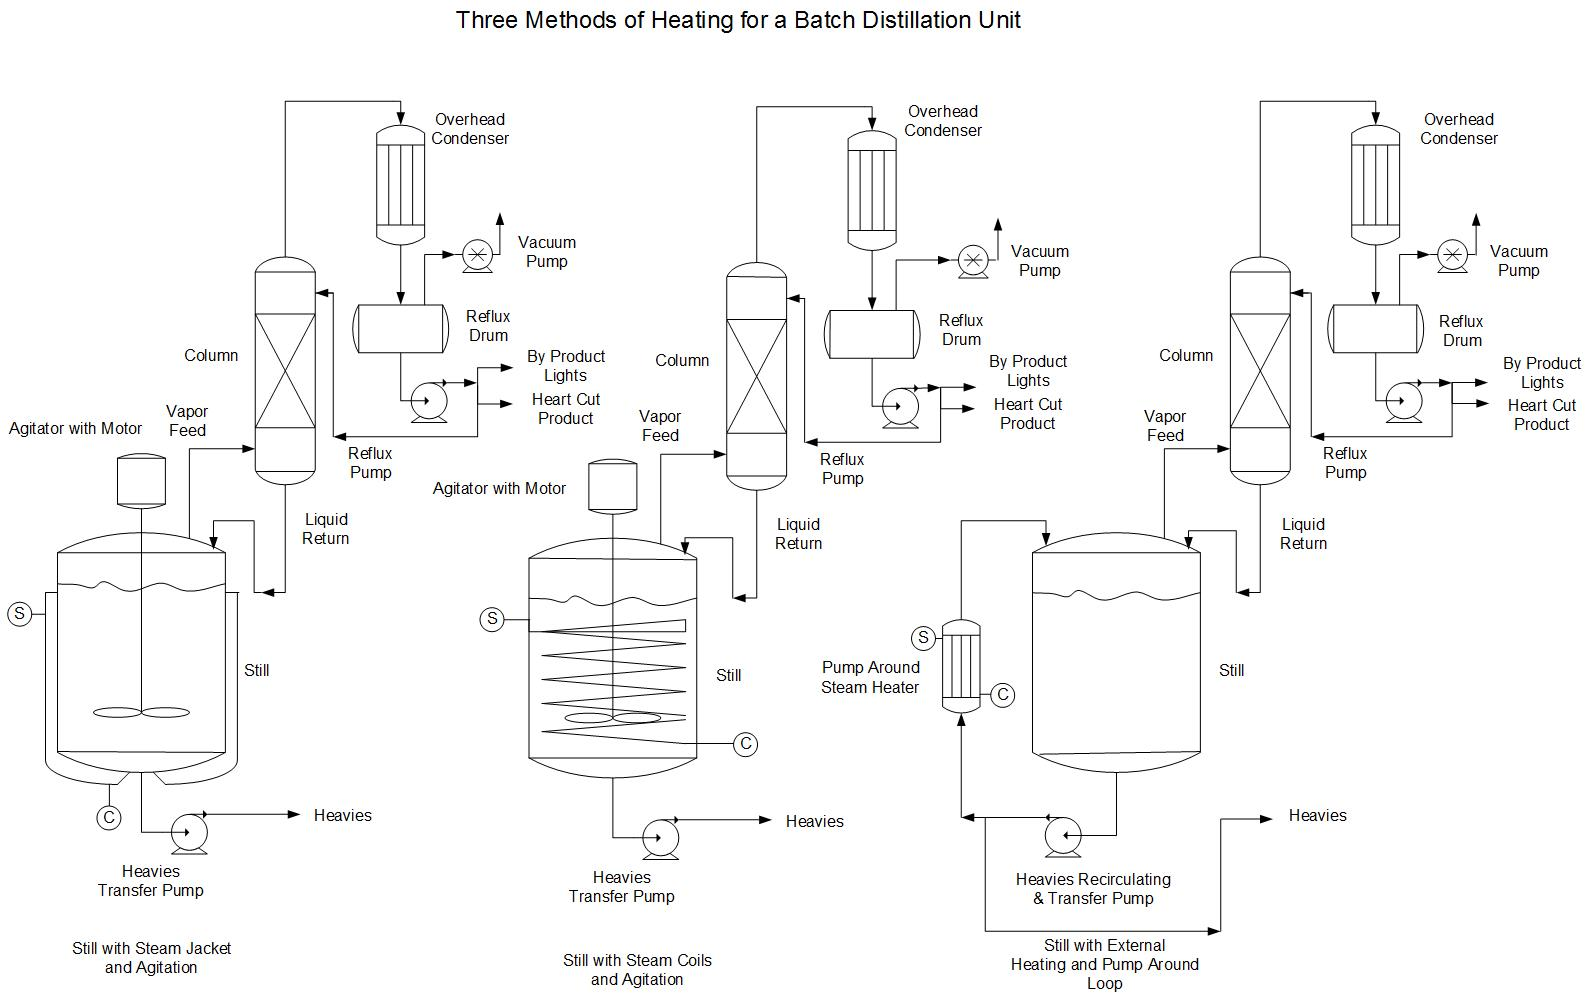 Designing A Batch Distillation Unit With Gantt Charts